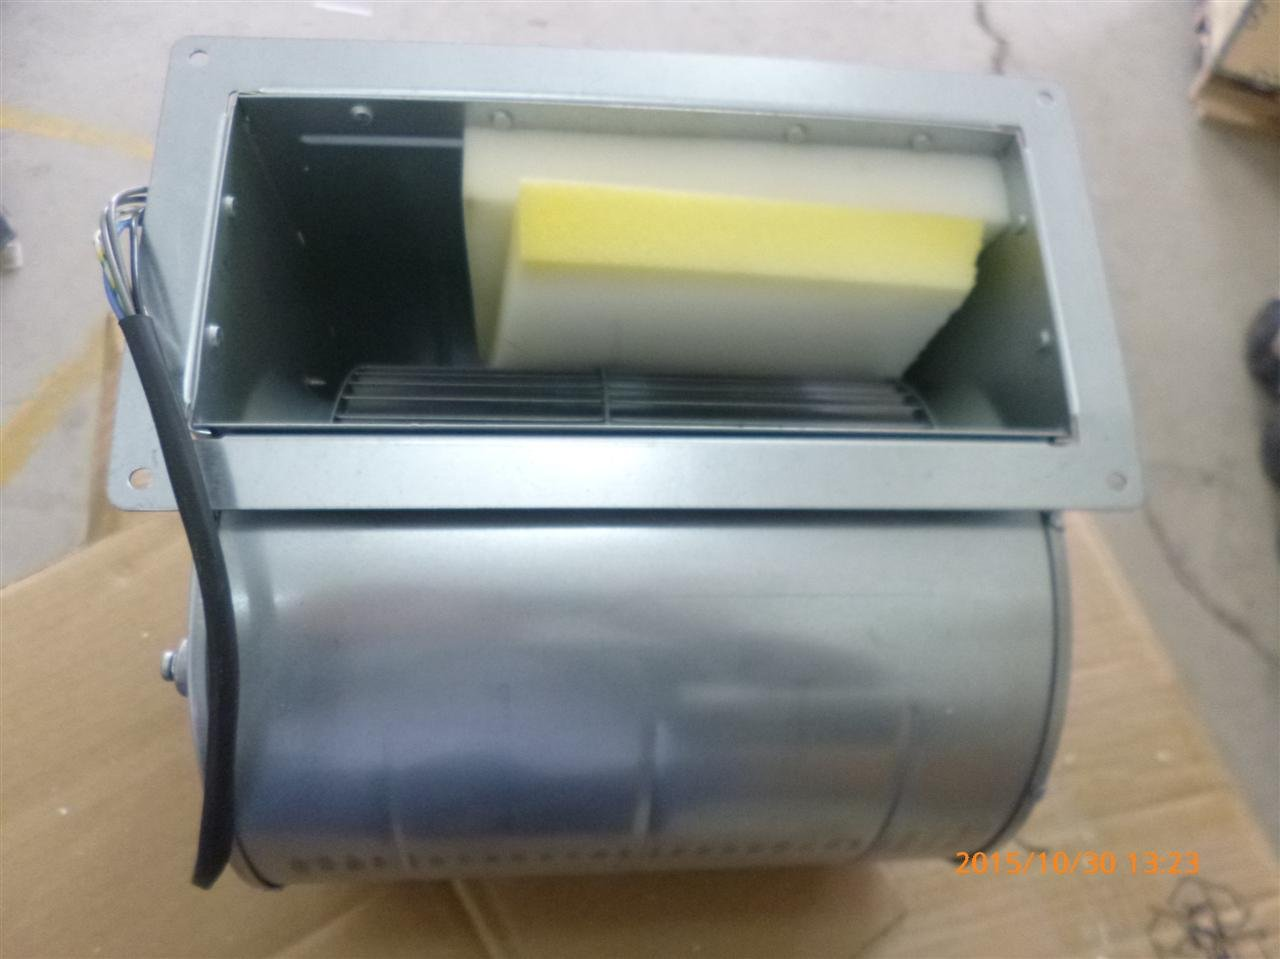 D2E146-AP47-C3 230V 300/330W 1.31/1.45A 8uF 400VDB M2E068-EC IP44 ABB Inverter Fan by SunnyStar (Image #3)